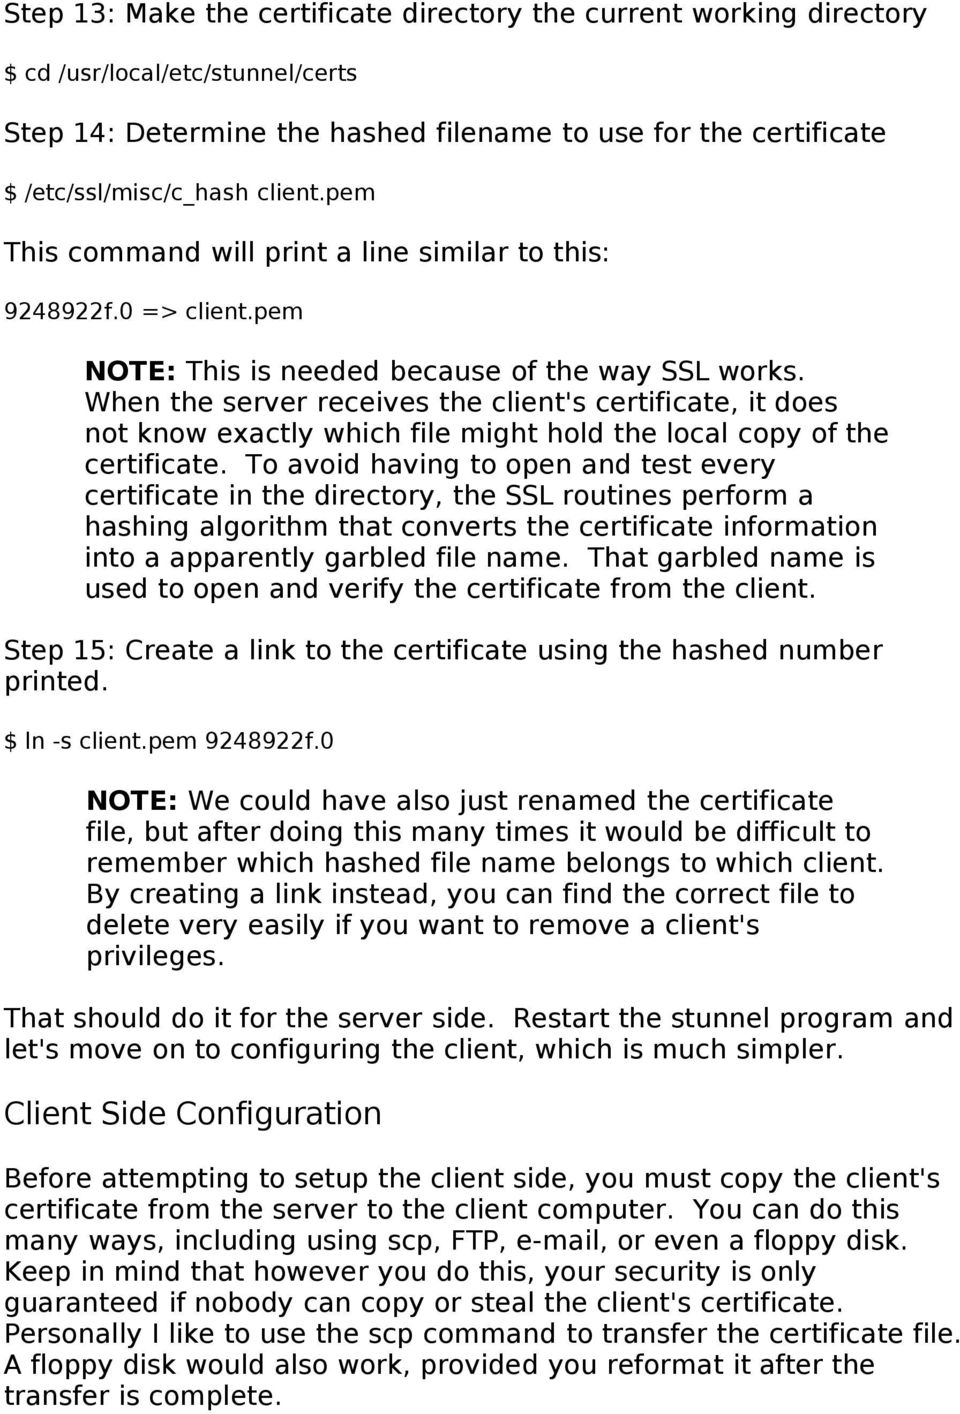 When the server receives the client's certificate, it does not know exactly which file might hold the local copy of the certificate.